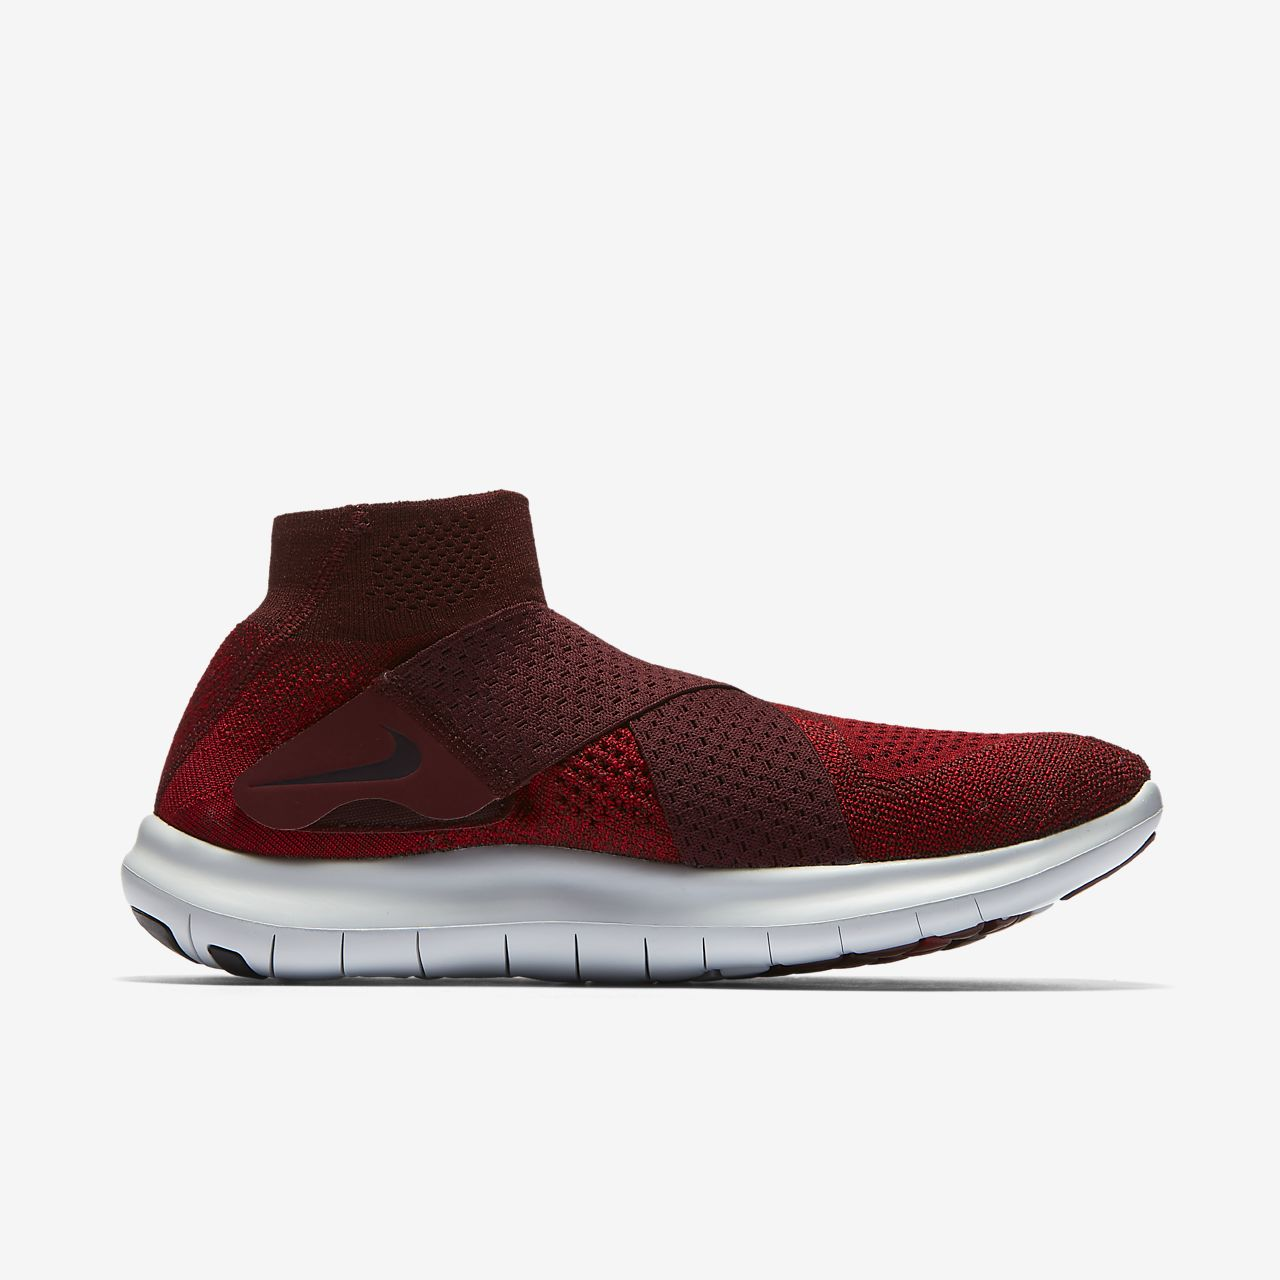 ... Nike Free RN Motion Flyknit 2017 Men's Running Shoe